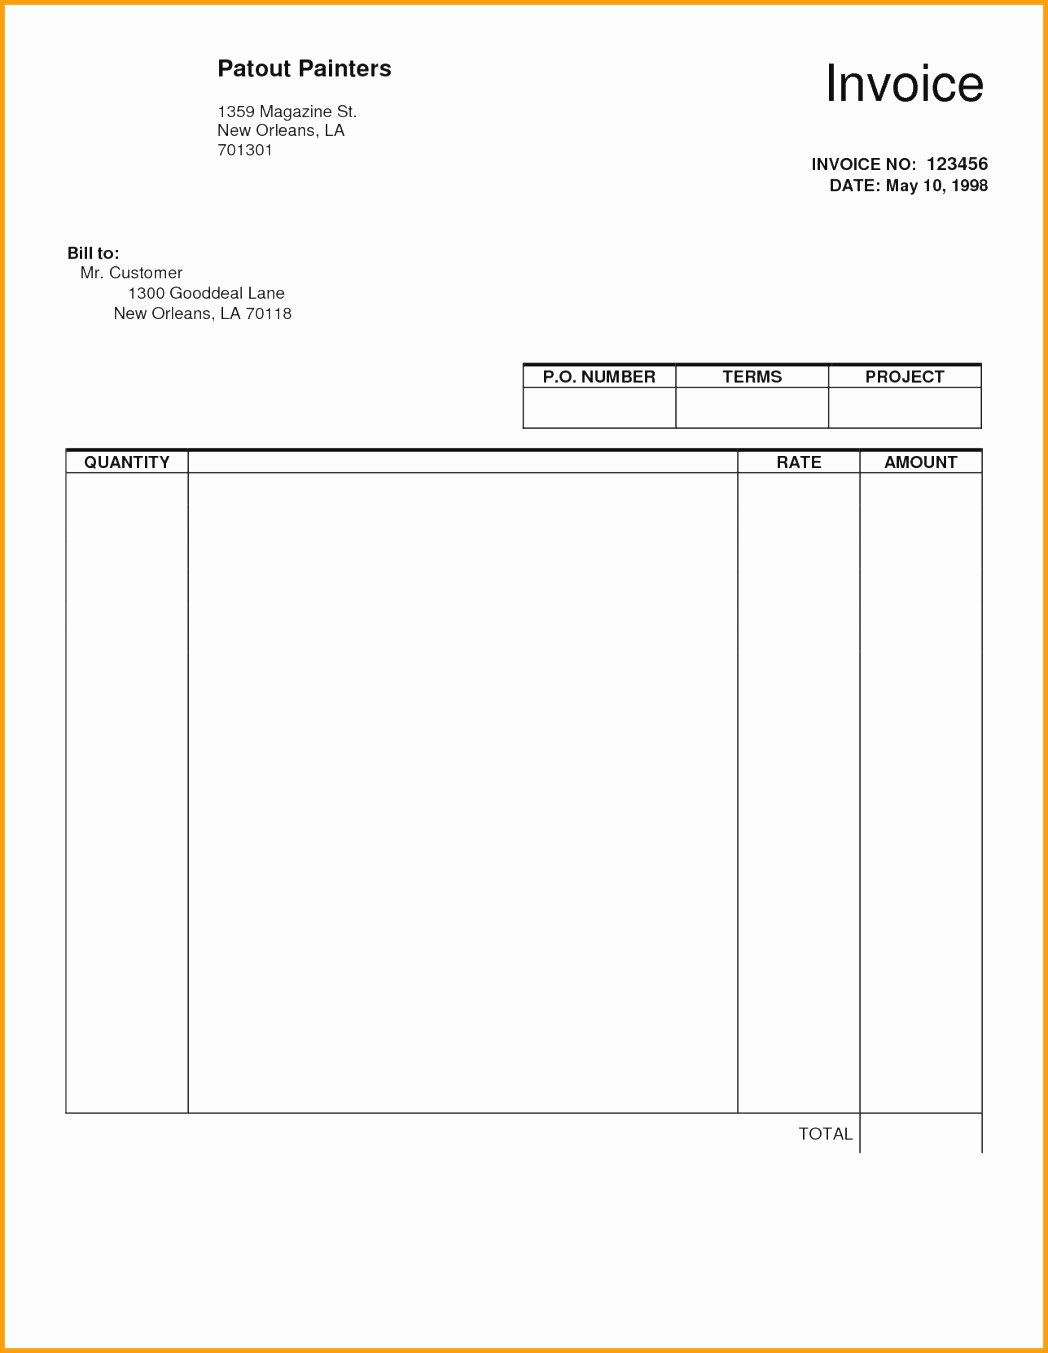 Self Employed Invoice Template Awesome Self Employed Invoice Template Word 10 Colorium Laboratorium